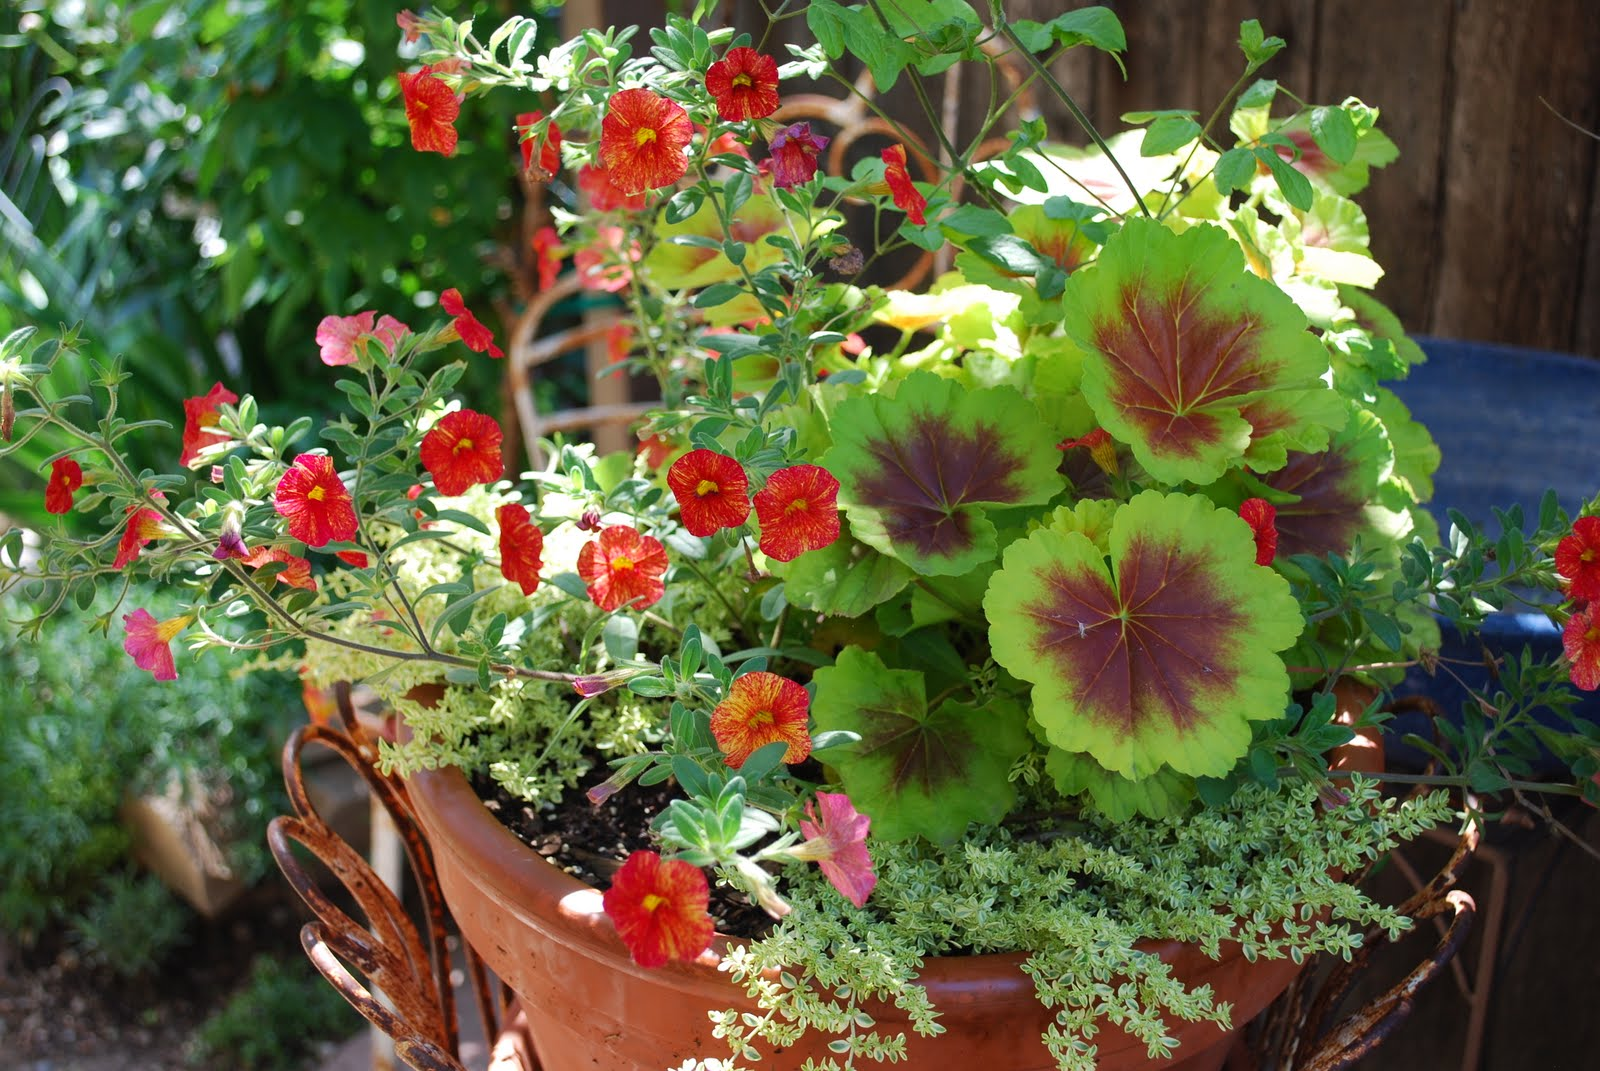 The art garden garden designers roundtable containers for Container garden ideas